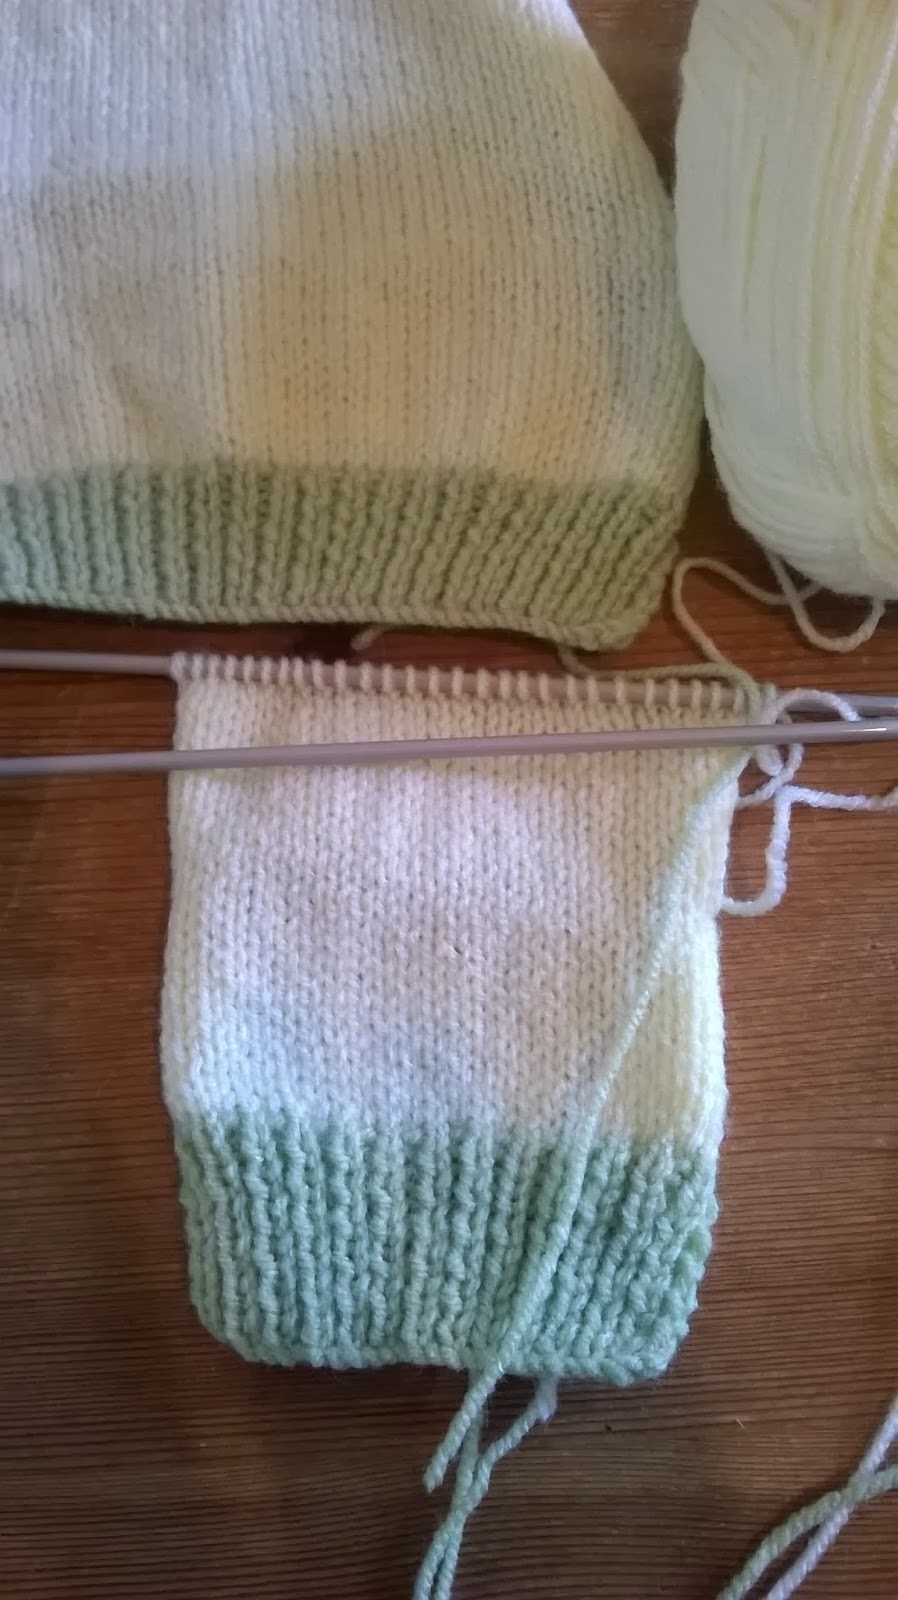 The Frugal Knit-Wit: Vintage Knitting